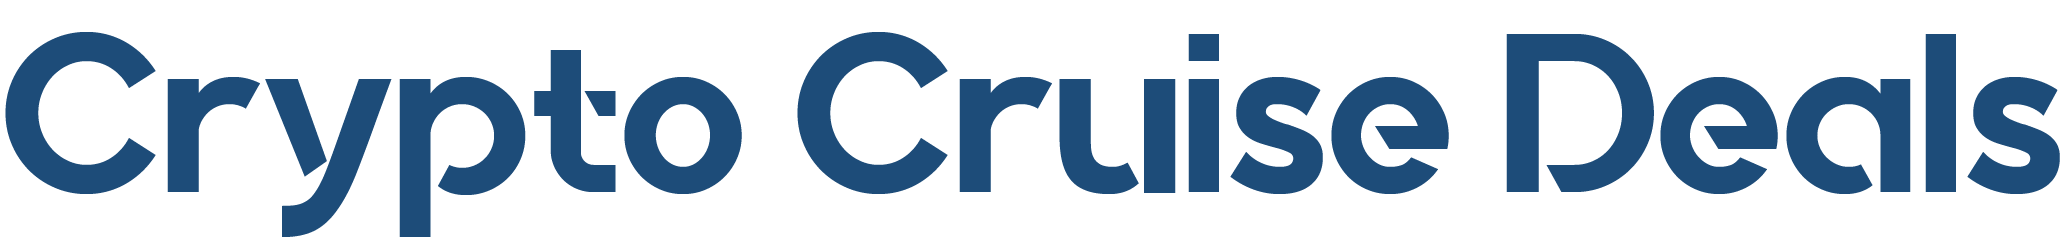 Crypto Cruise Deals